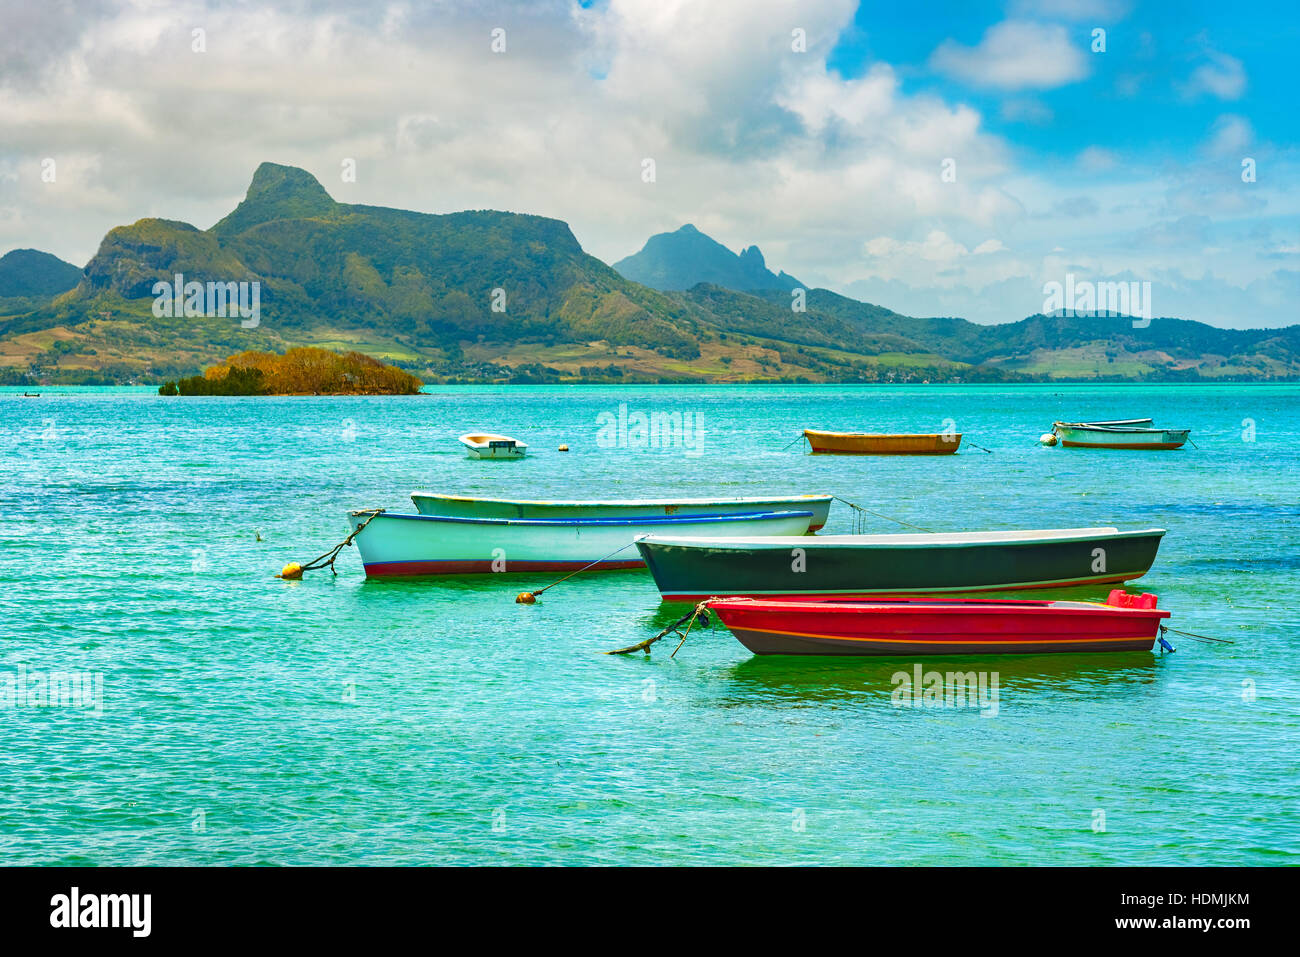 Boats in a sea at day time. Mauritius - Stock Image